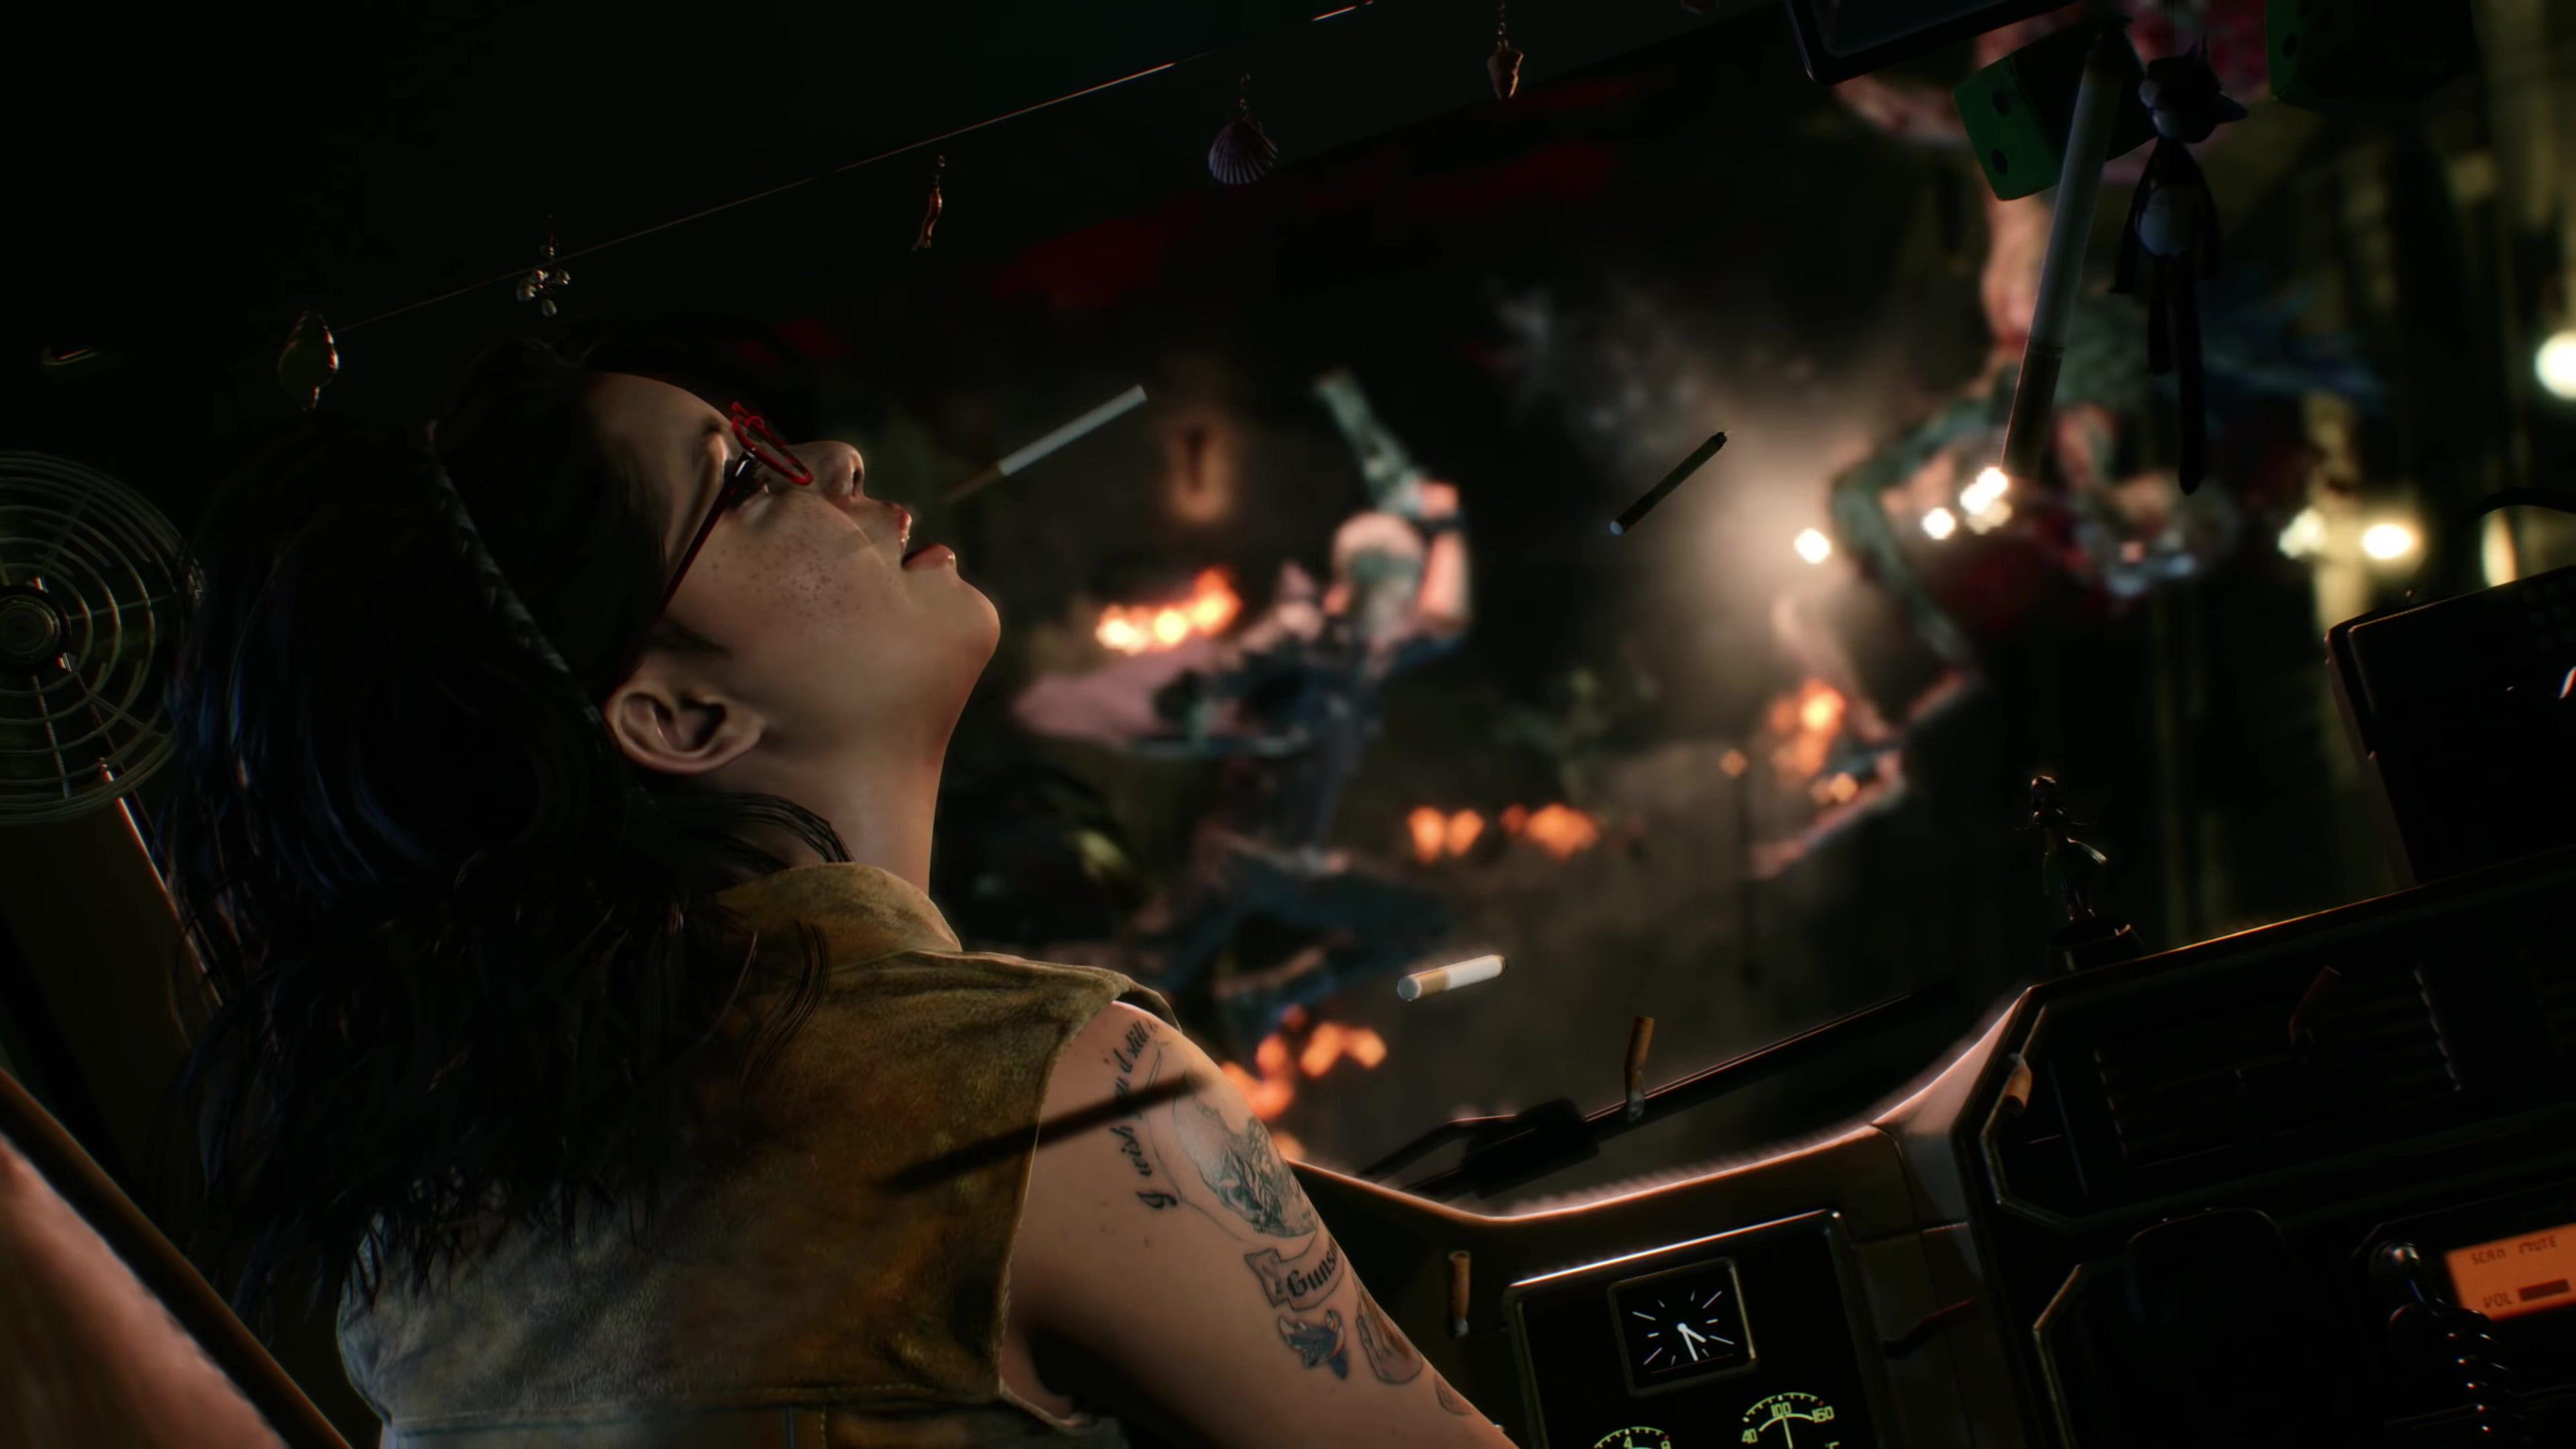 Devil May Cry 5 066.jpg - Devil May Cry 5